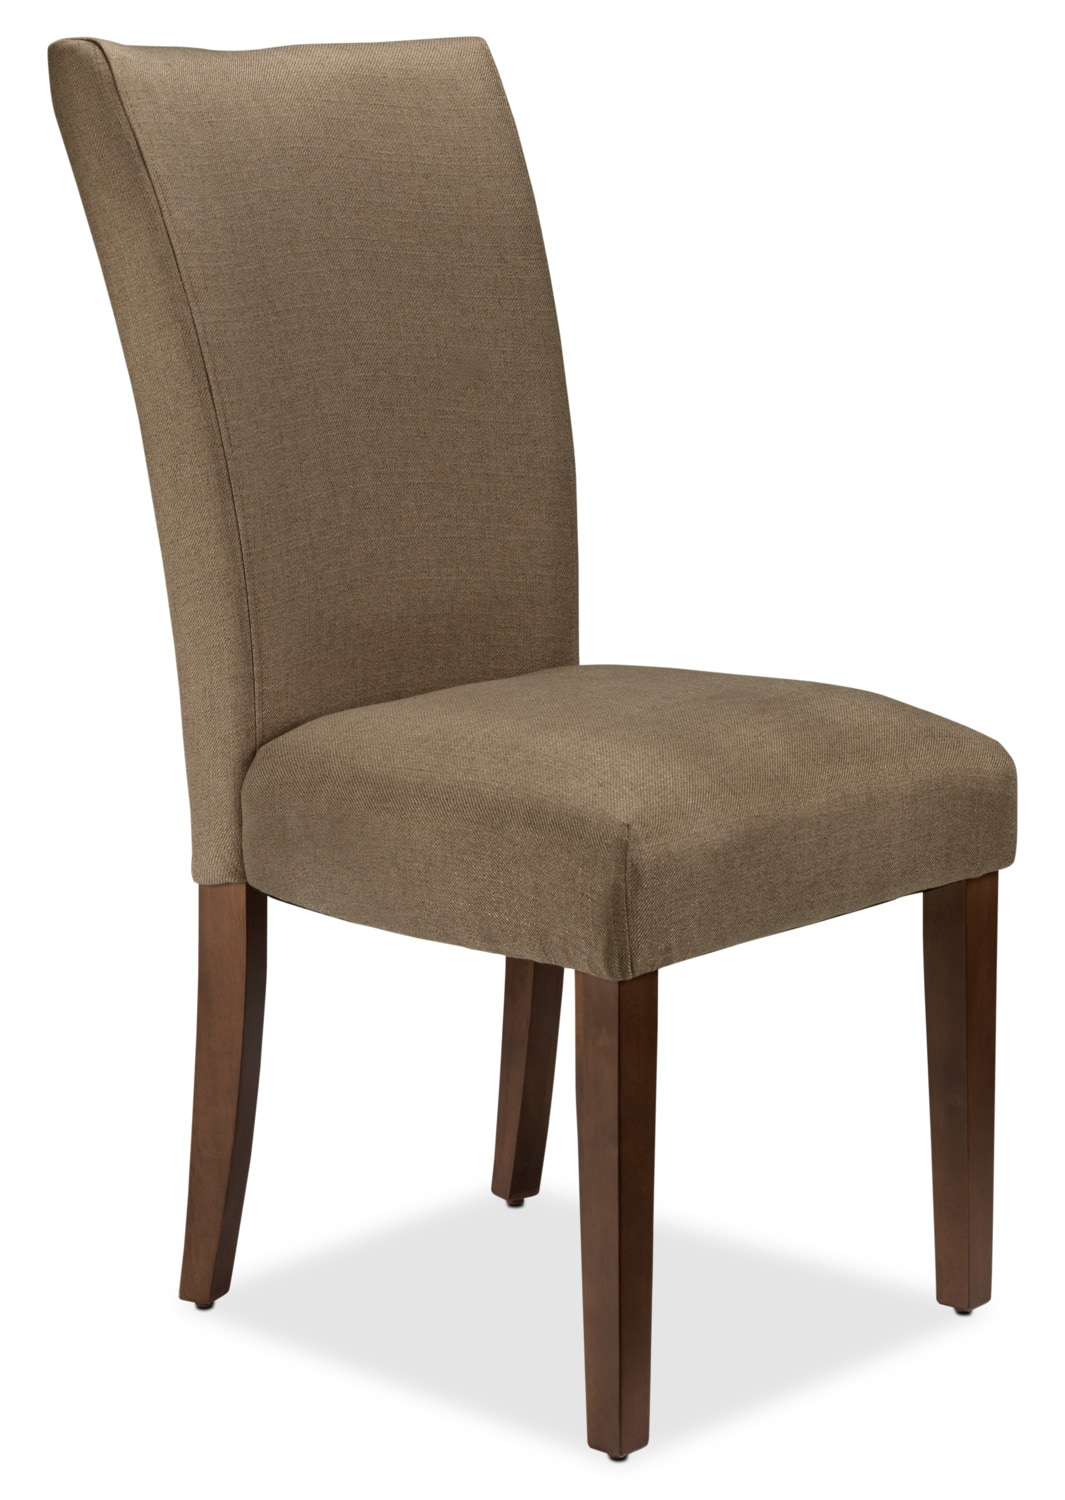 Image Result For Dining Room Chairs Leons